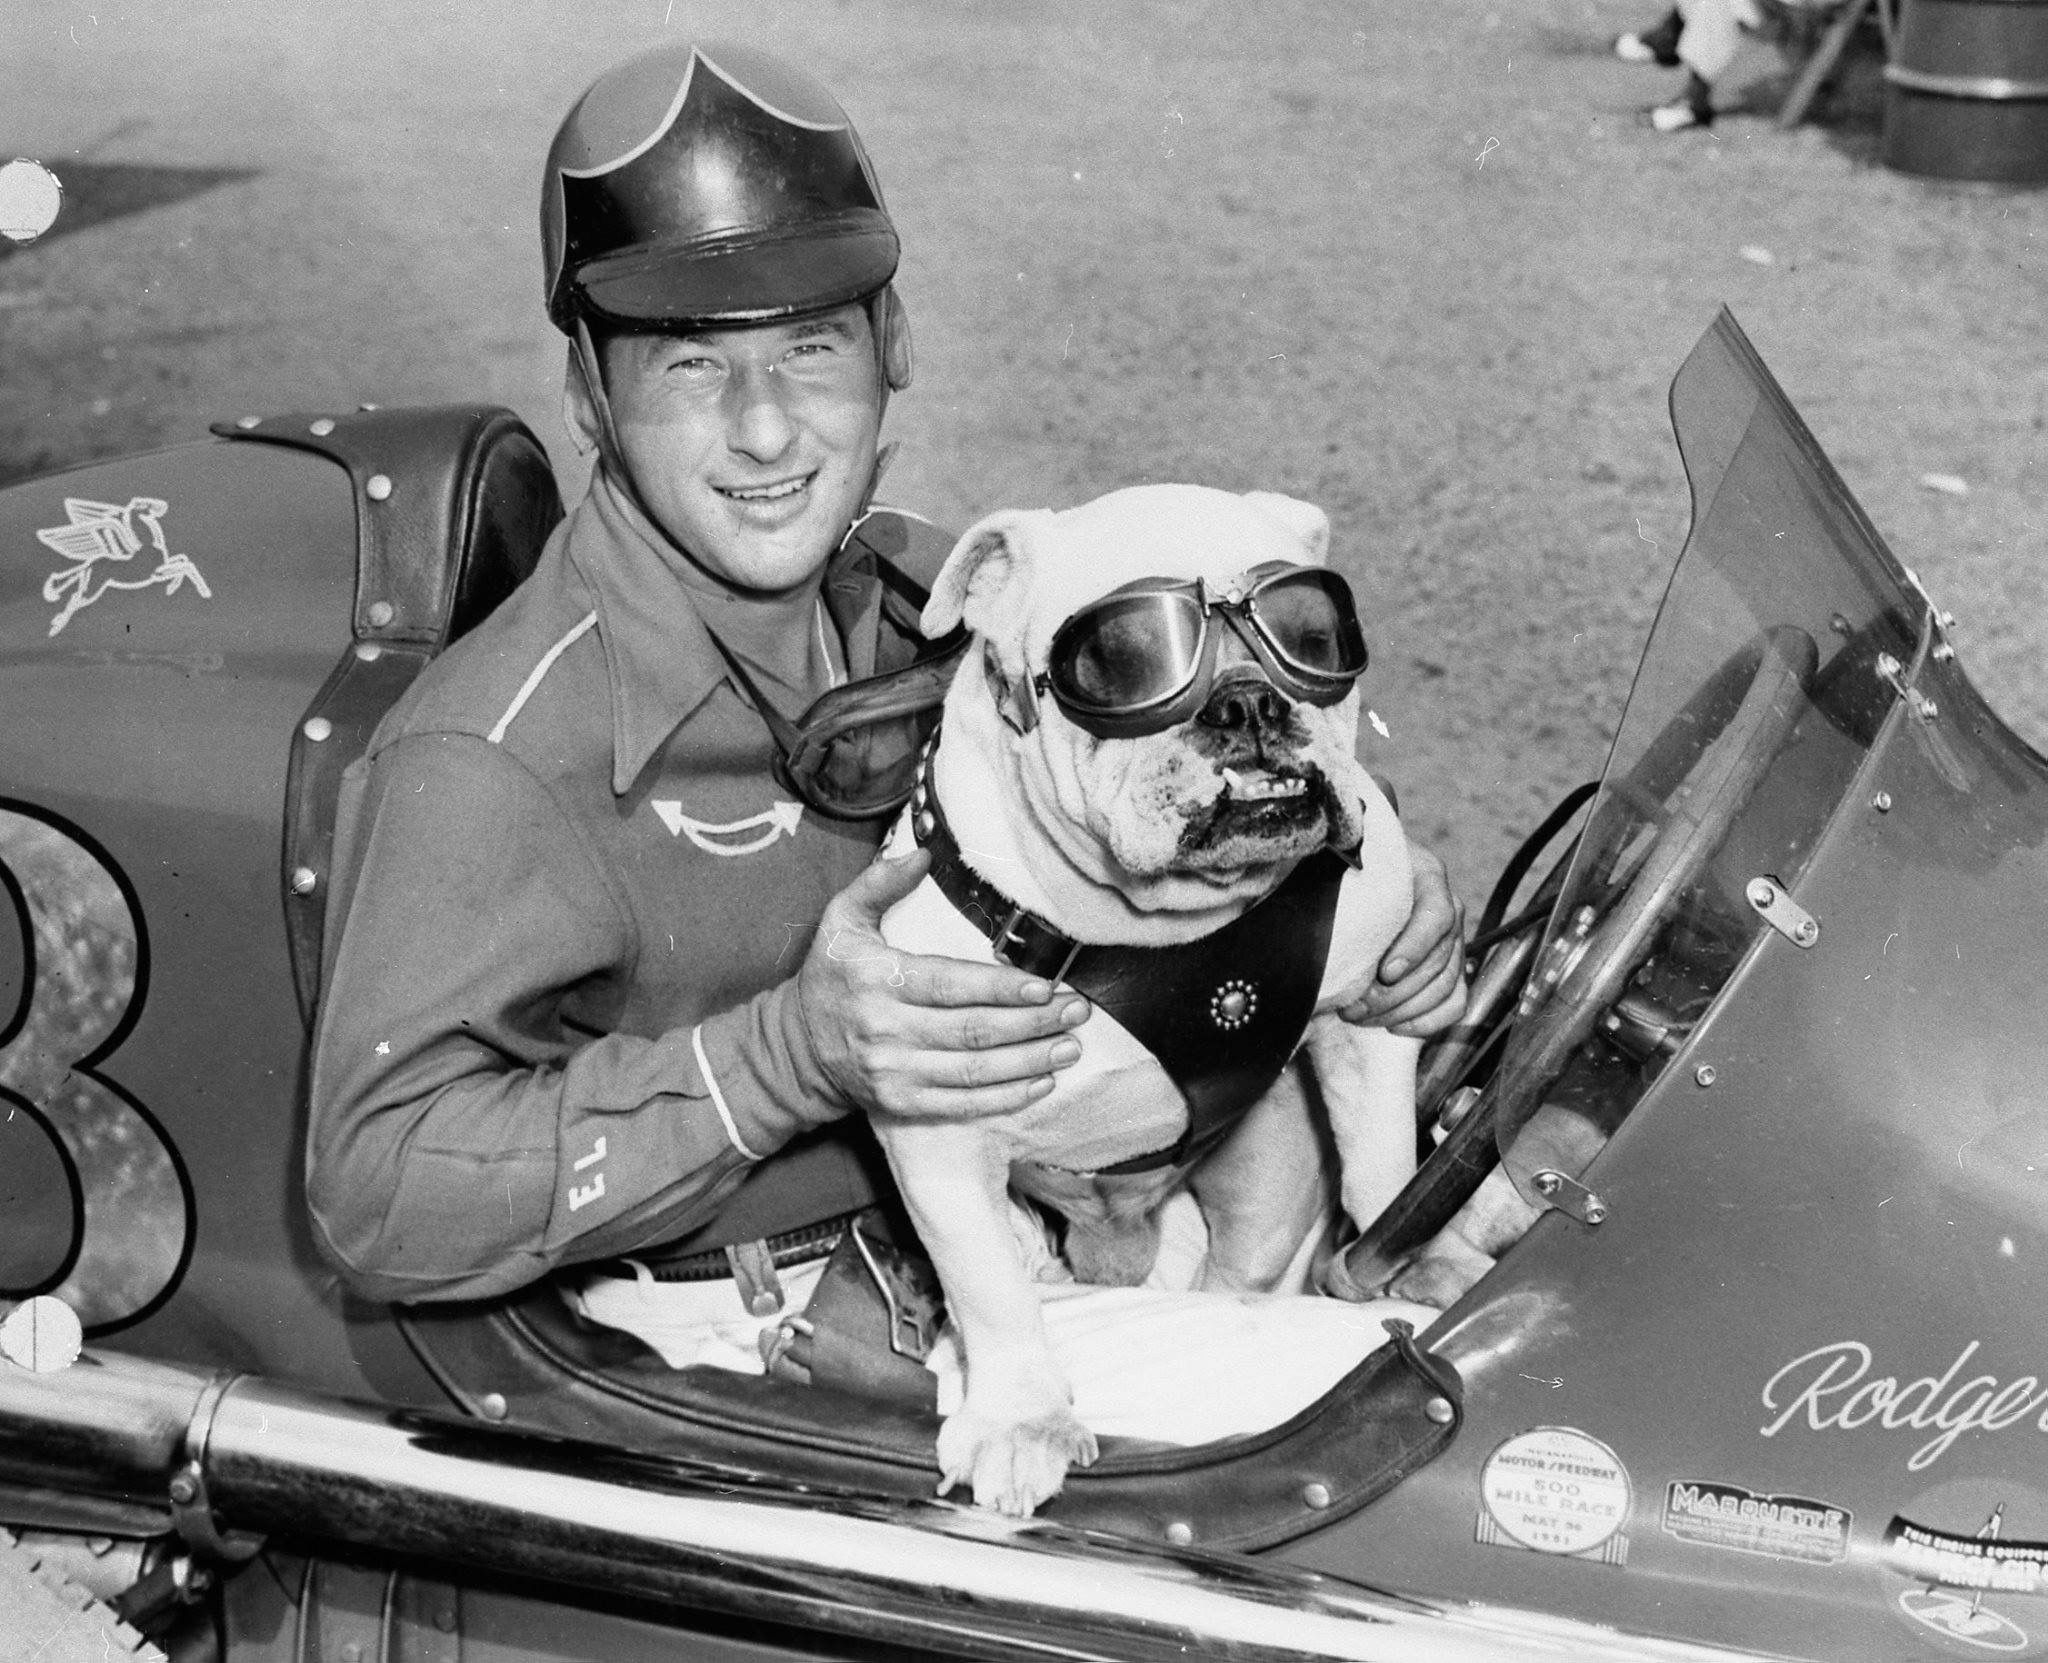 Indianapolis 500 1951 Rodger Ward and Friend Retriever